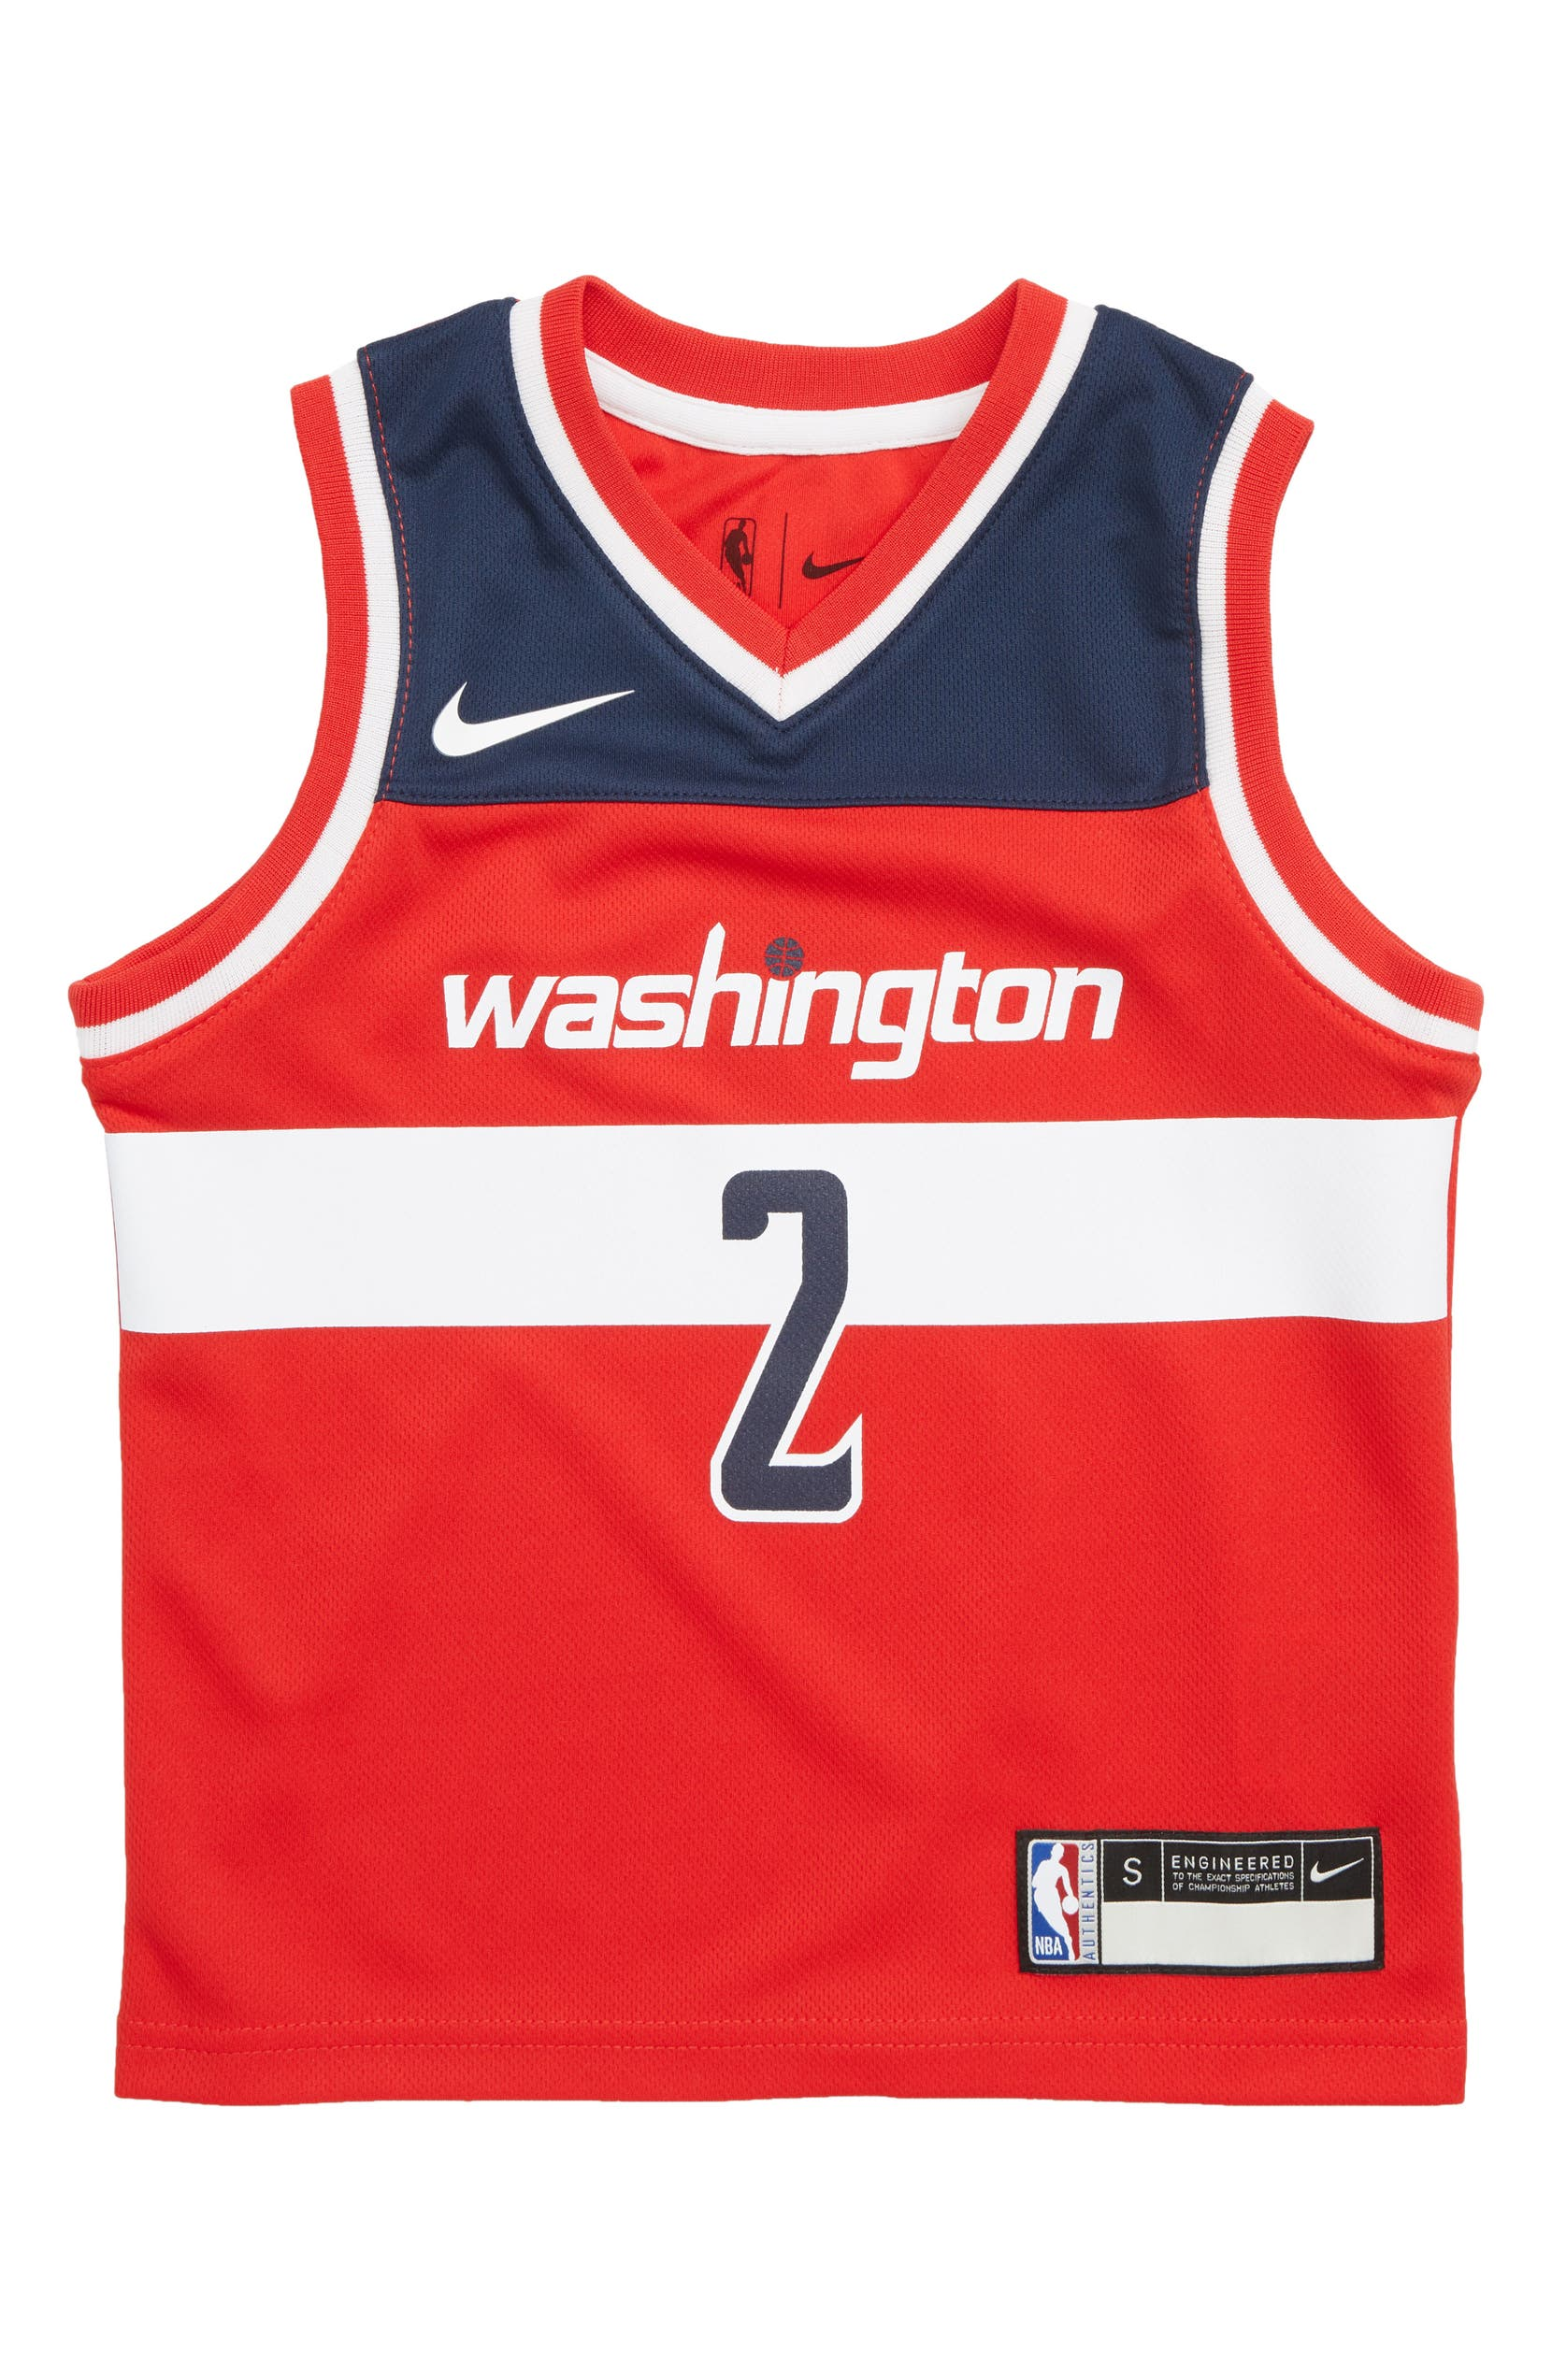 Nike Washington Wizards John Wall Basketball Jersey (Toddler Boys ... d679c598c